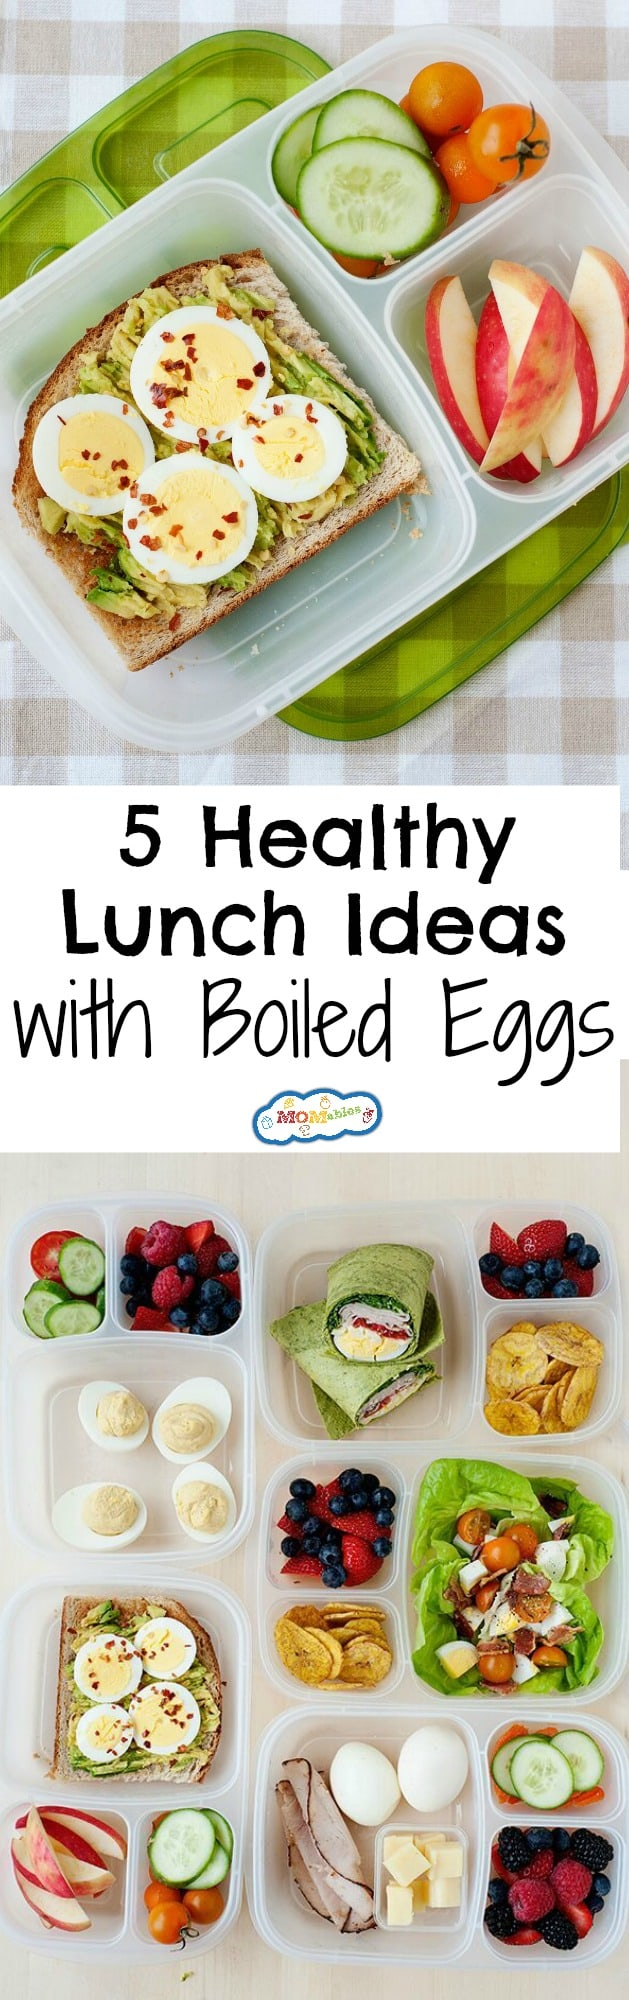 healthy school and office lunch ideas